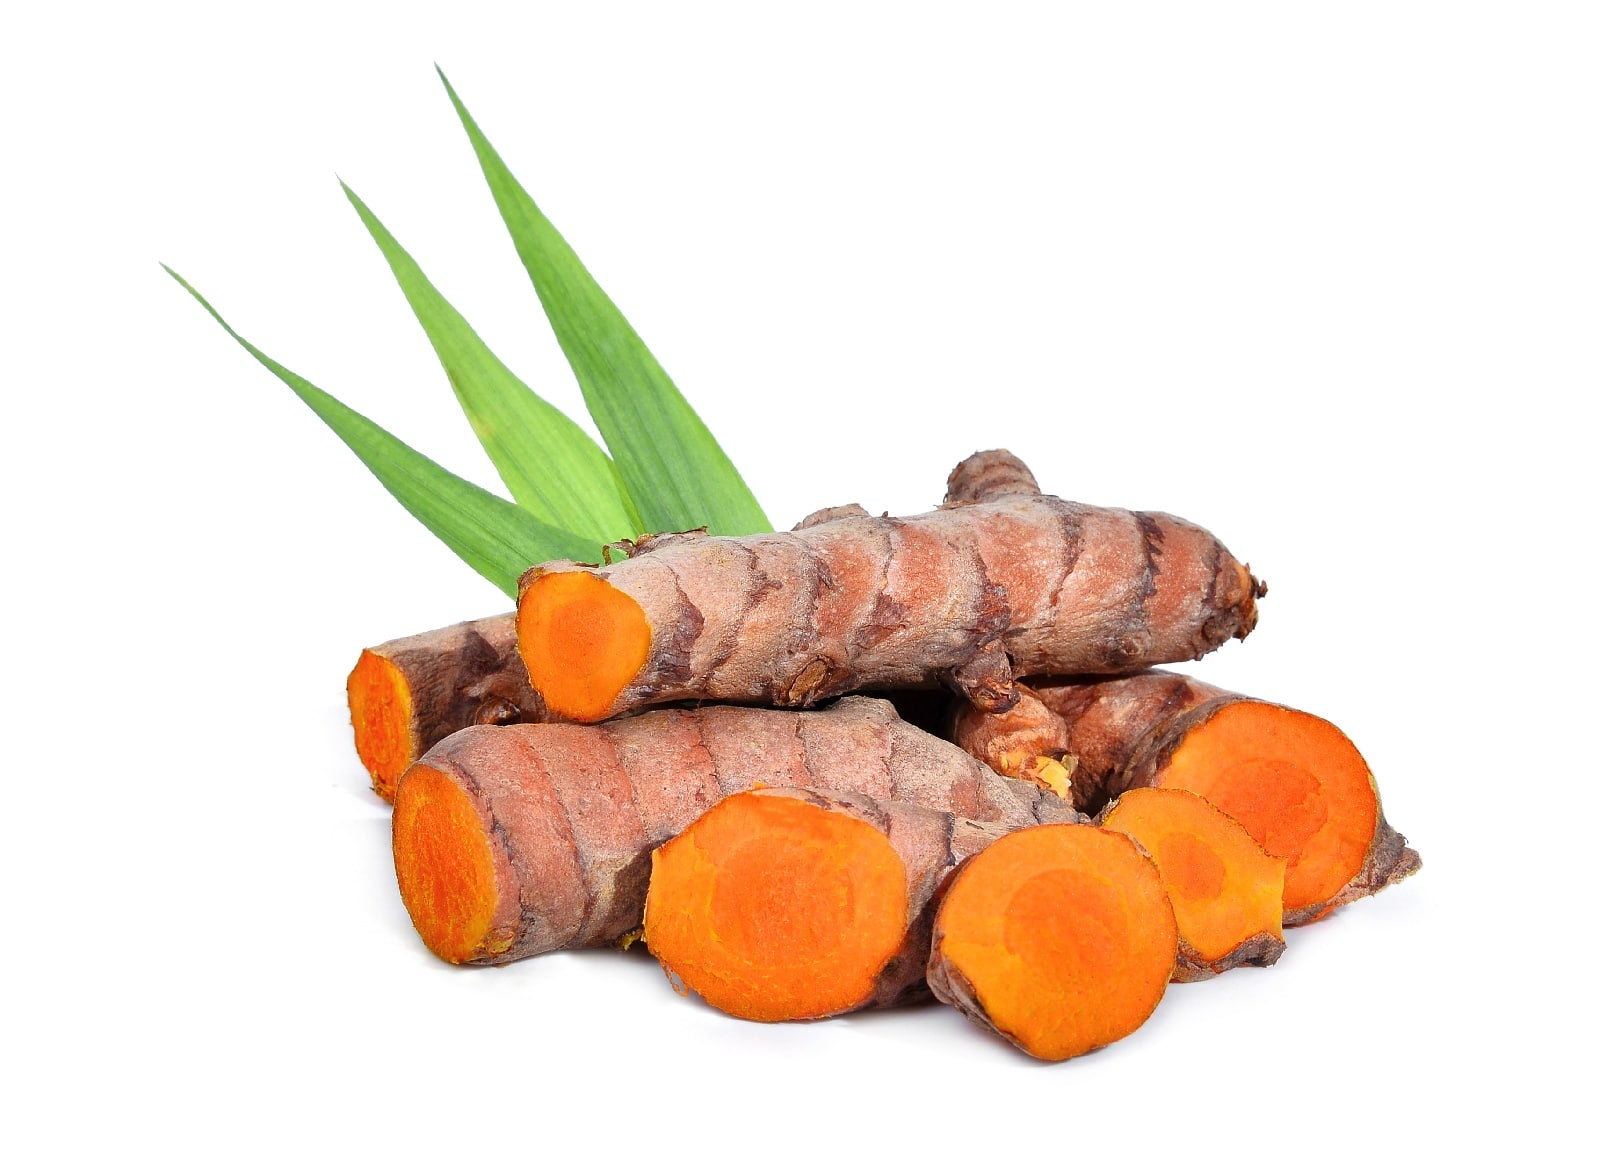 Fresh cut turmeric root on a white background